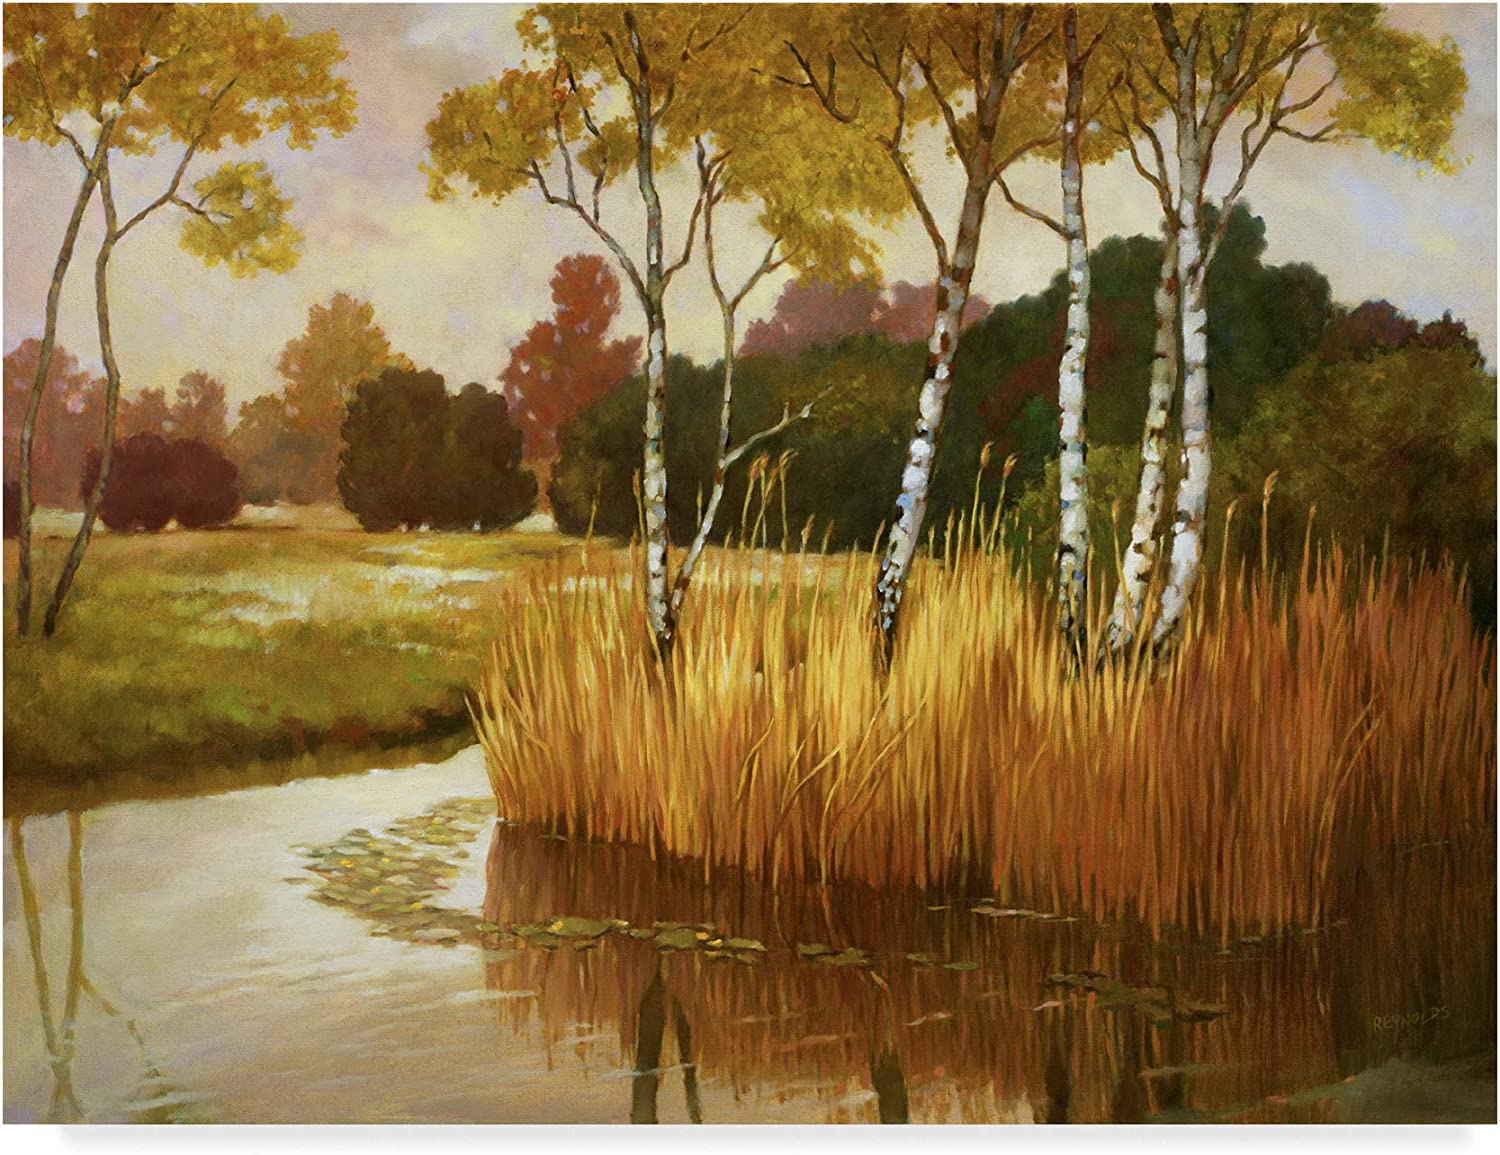 Trademark Fine Art Reeds Birches and Water Ii Wall Decor by Graham Reynolds, 14x19